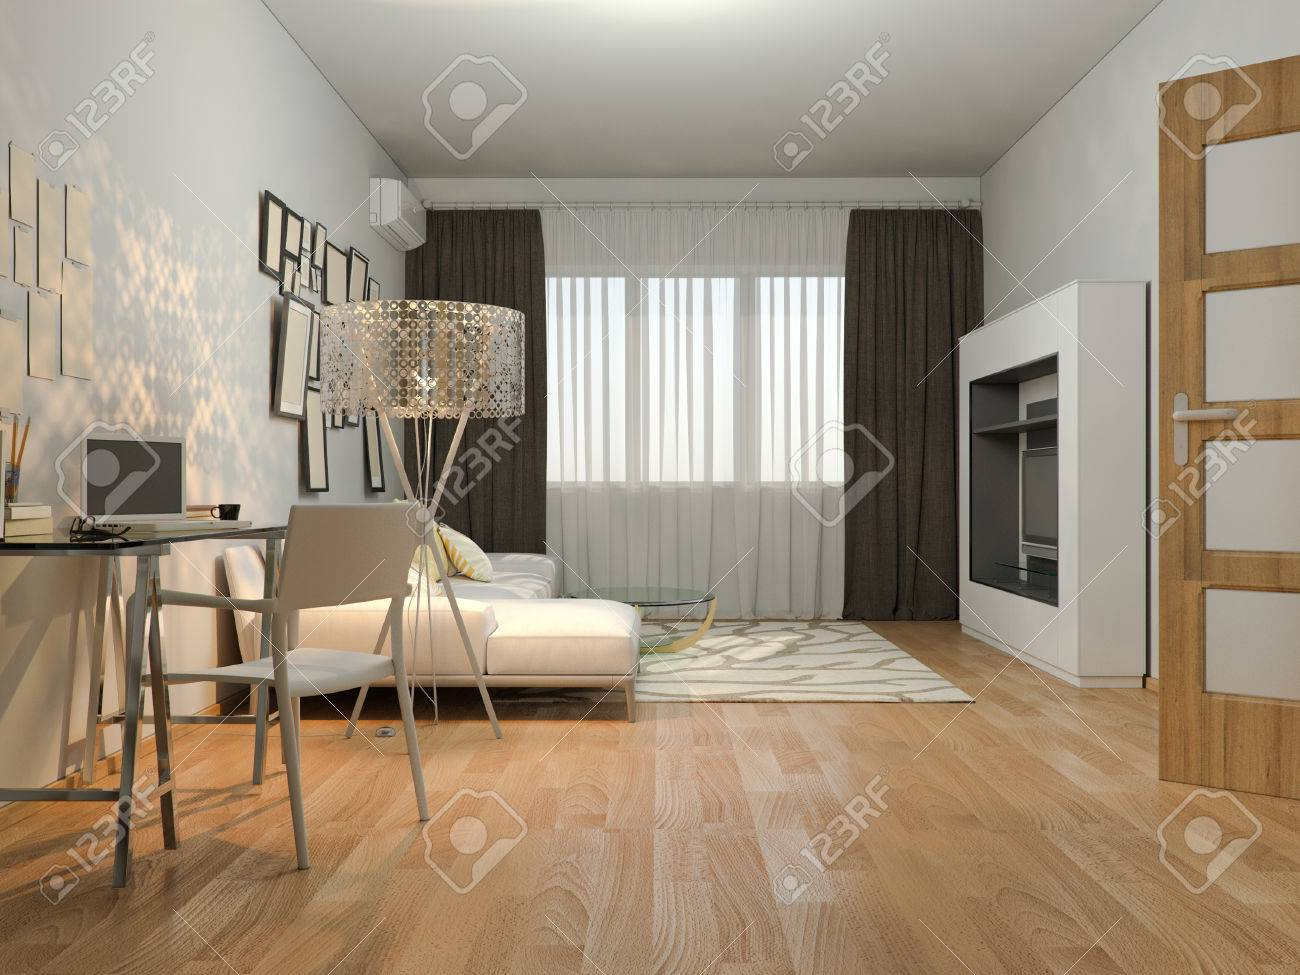 3d Render Of Interior Design Living In A Studio Apartment In Stock Photo Picture And Royalty Free Image Image 52392291